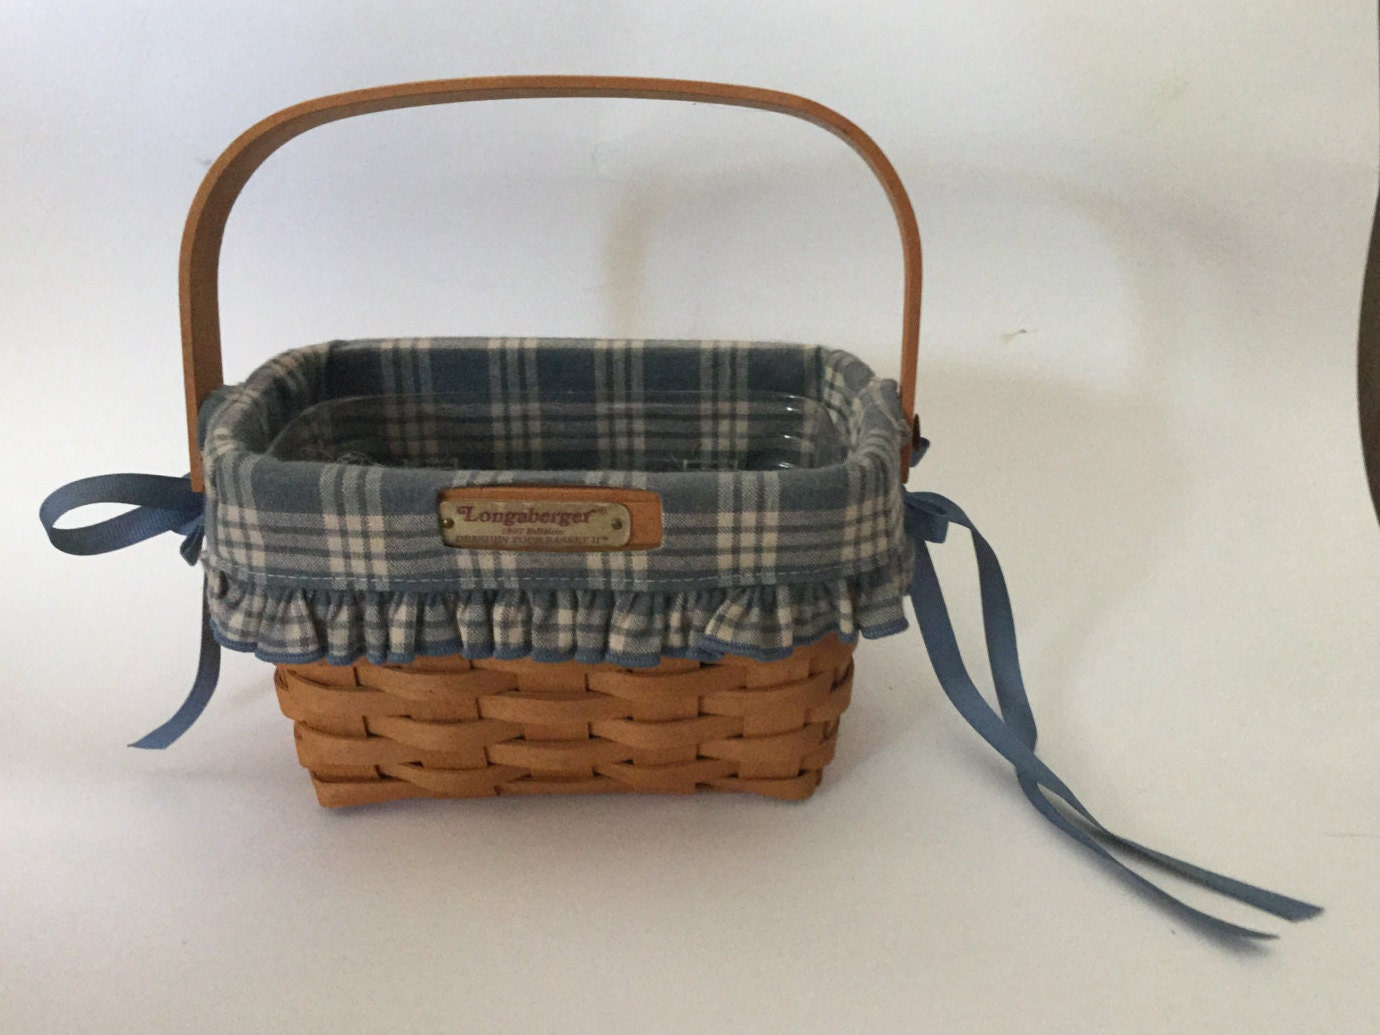 Handmade Baskets From Ohio : Longaberger handmade small basket with liner dresden ohio